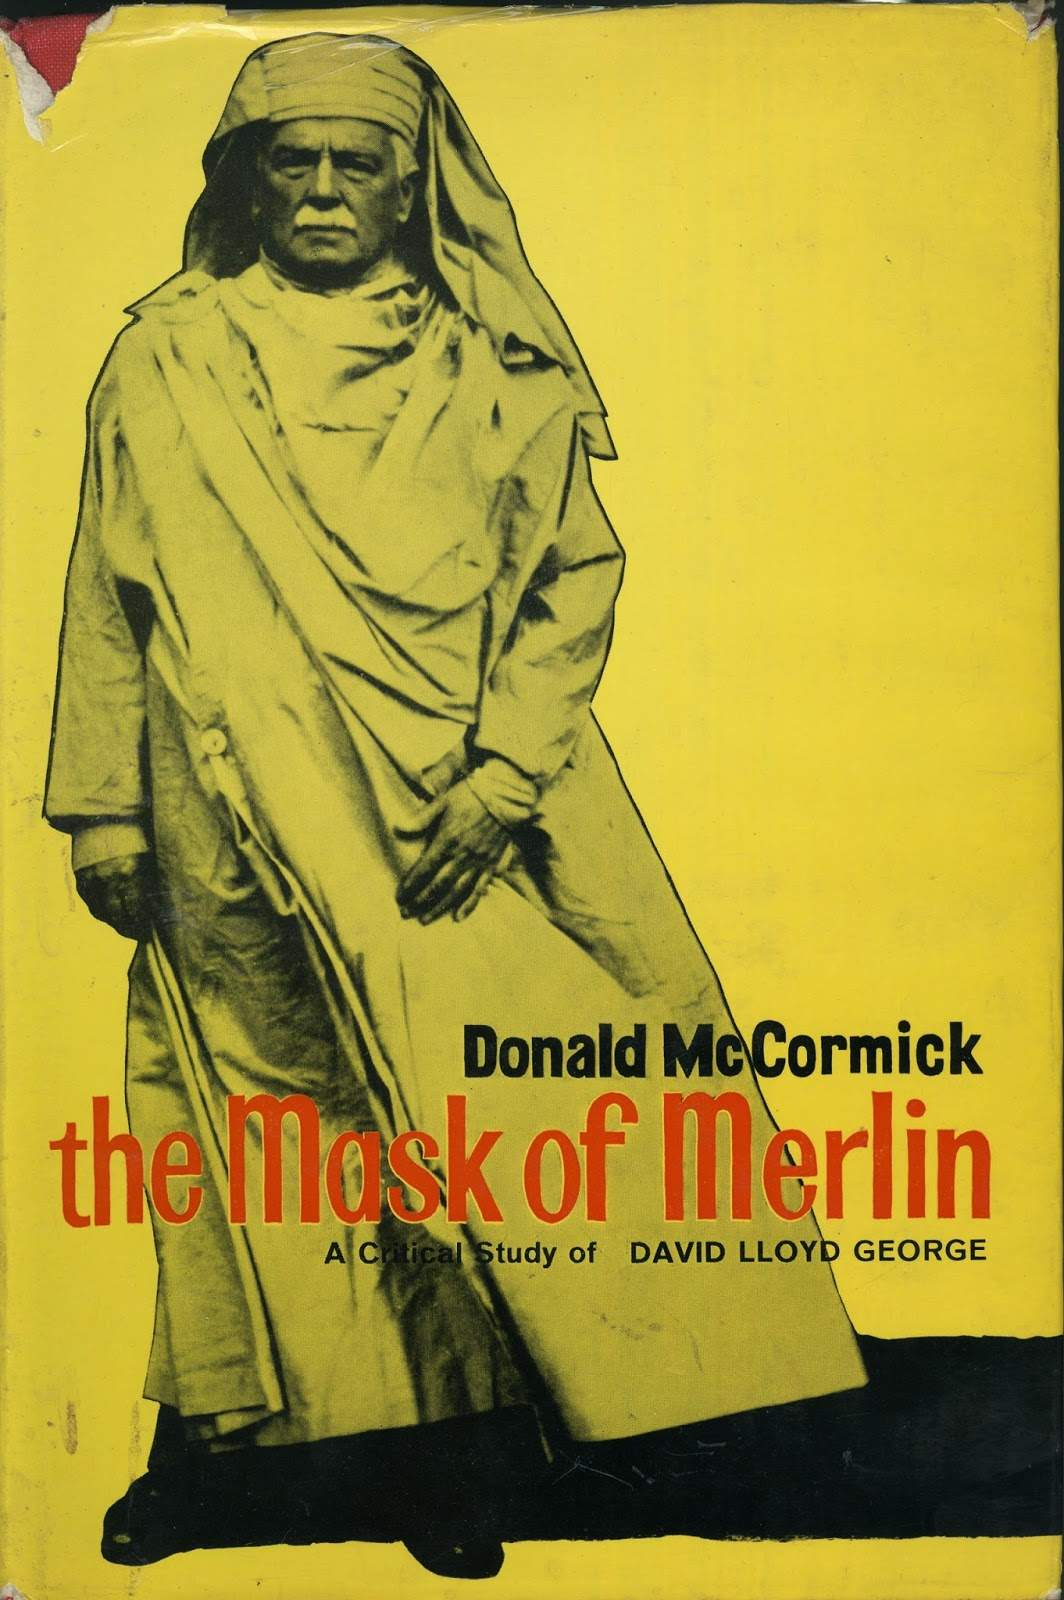 1963 The Mask of Merlin